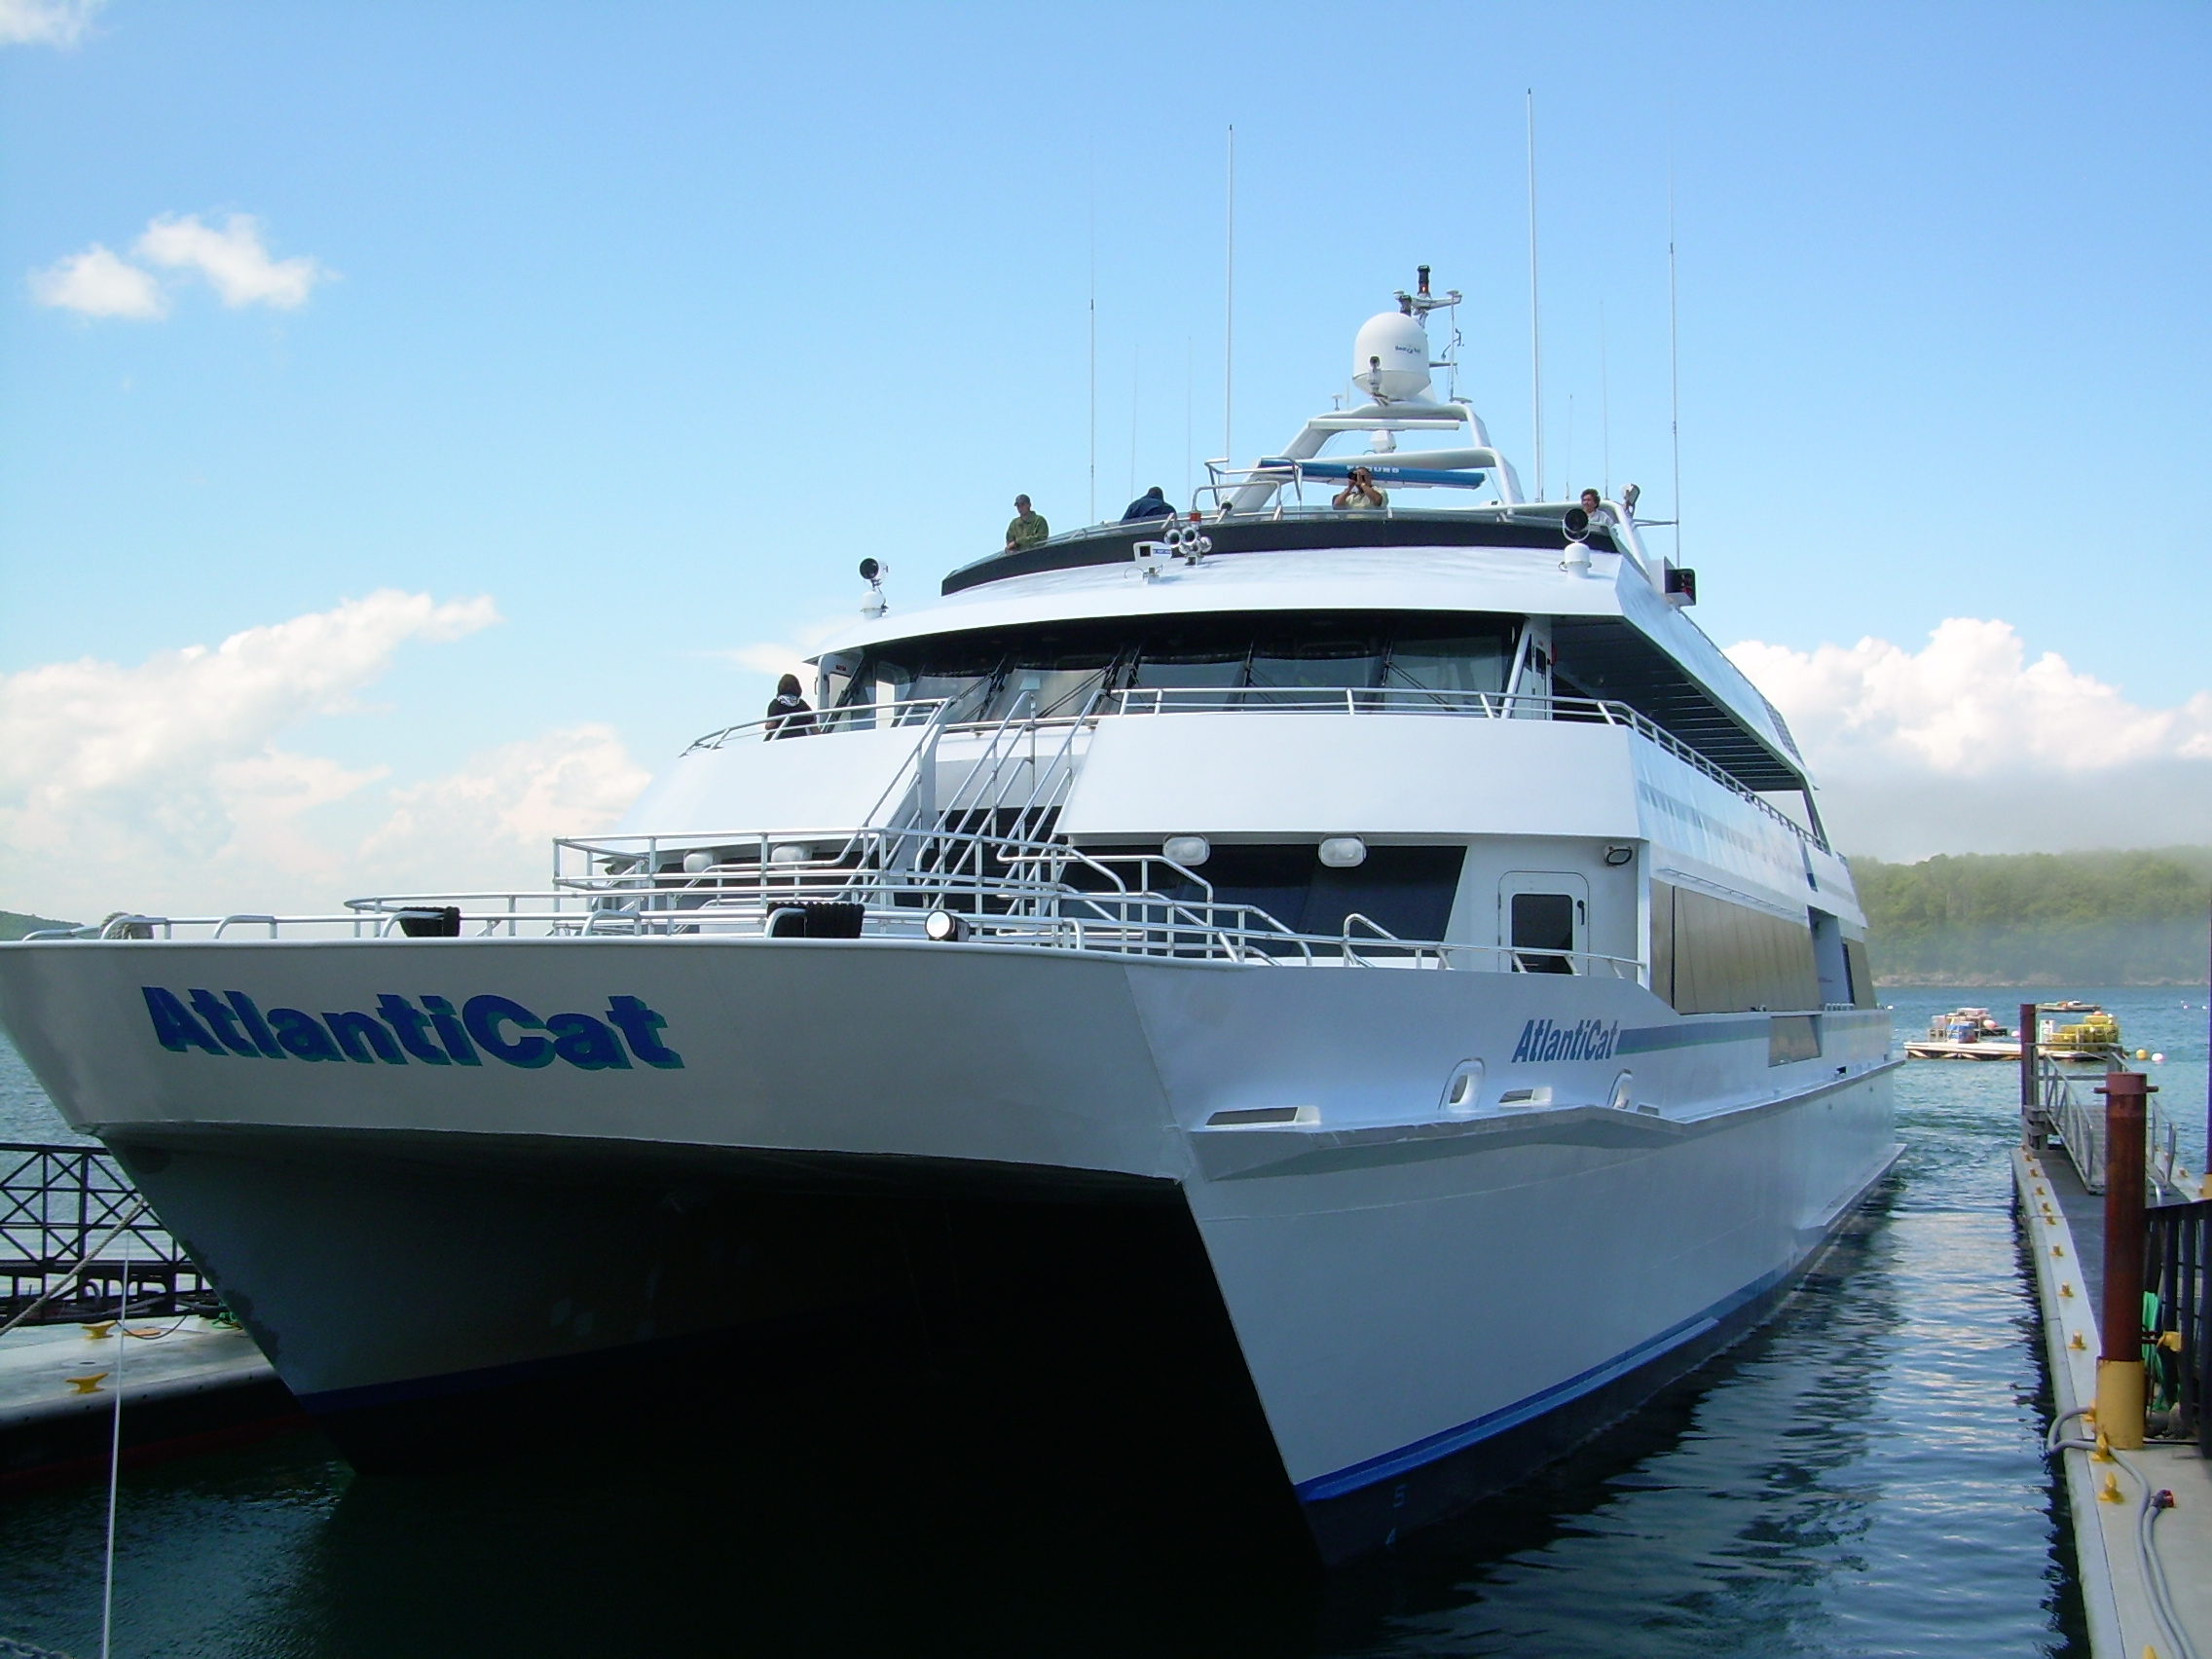 Atlantic Cat at Dock 2.jpg